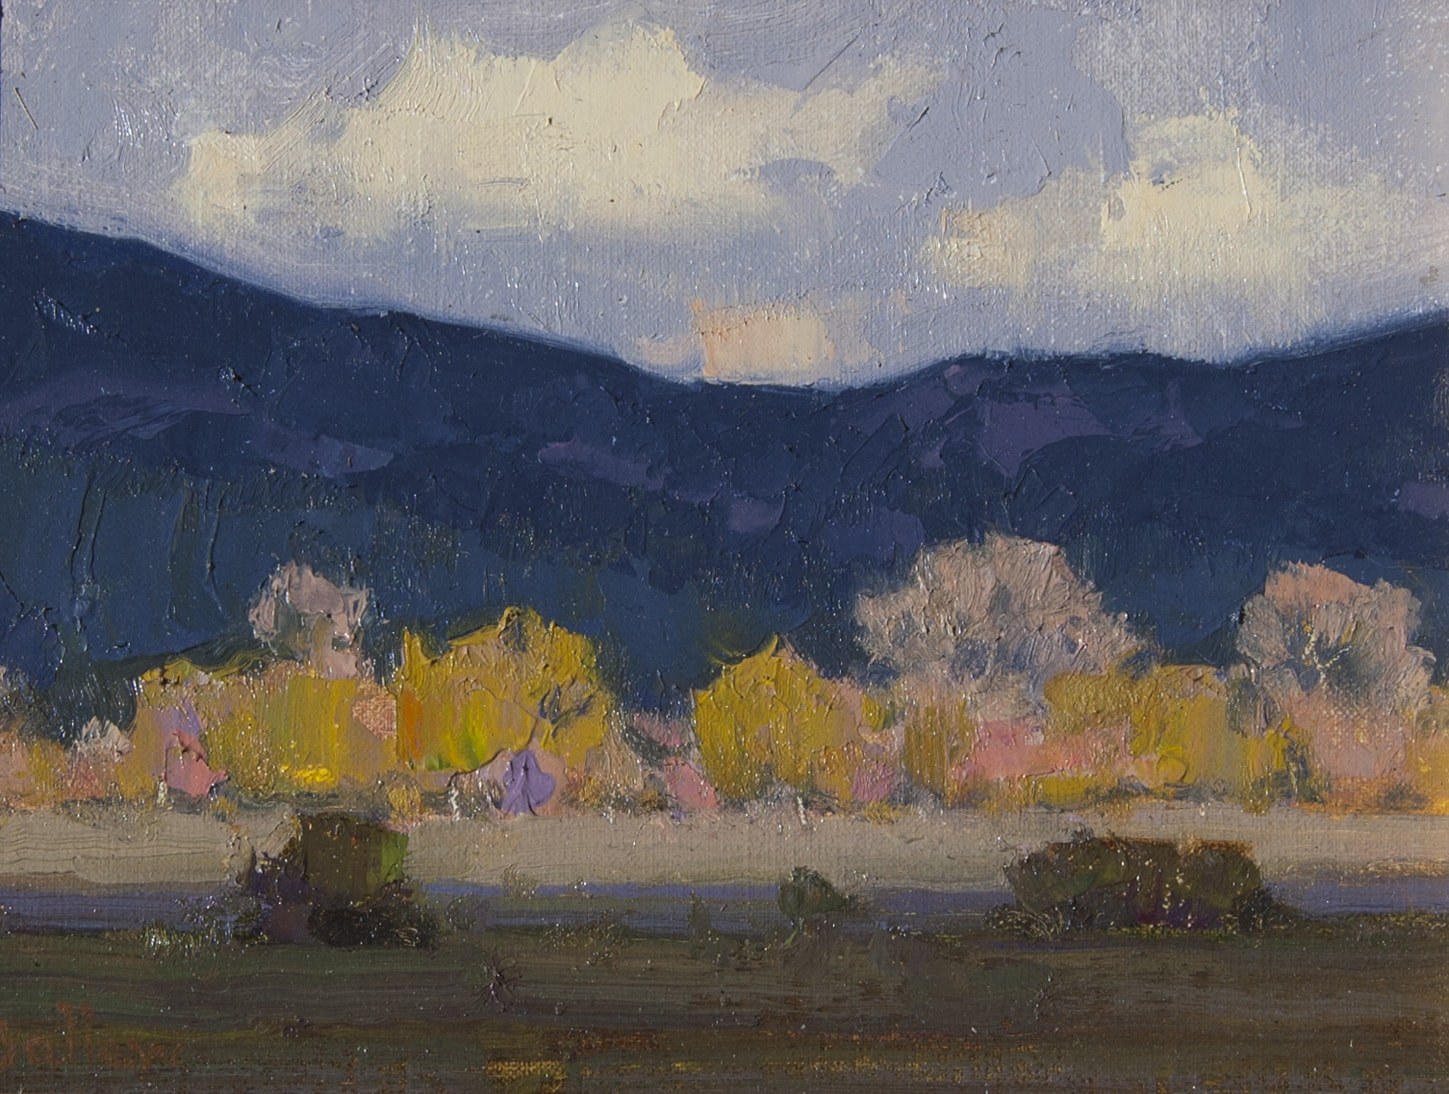 Sunlight and Shadow, Taos painting by David Ballew